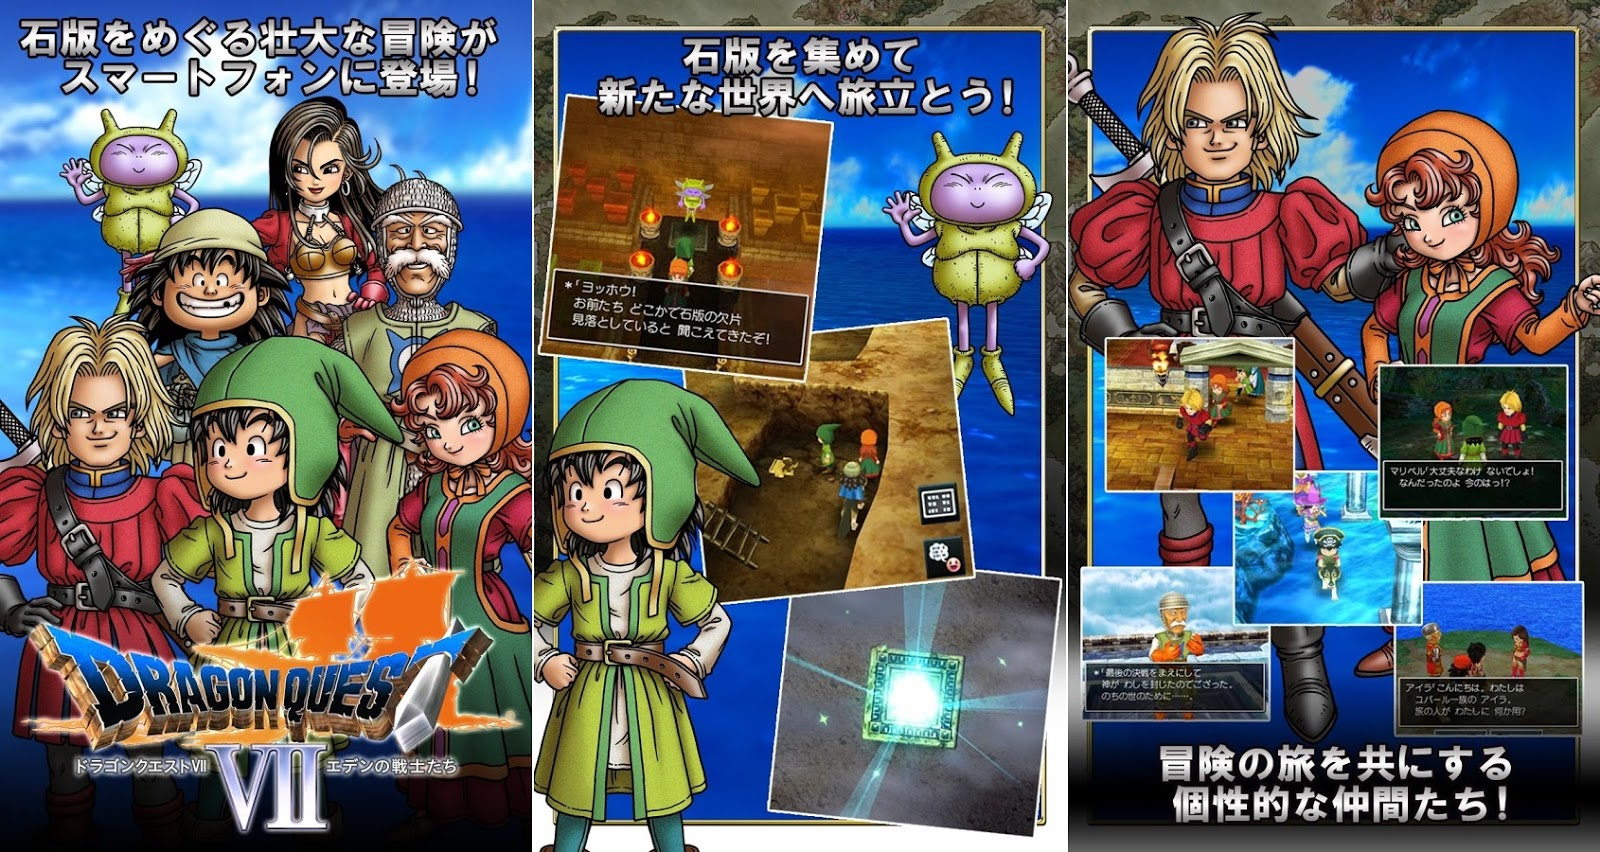 dragon quest 8 android apk + data